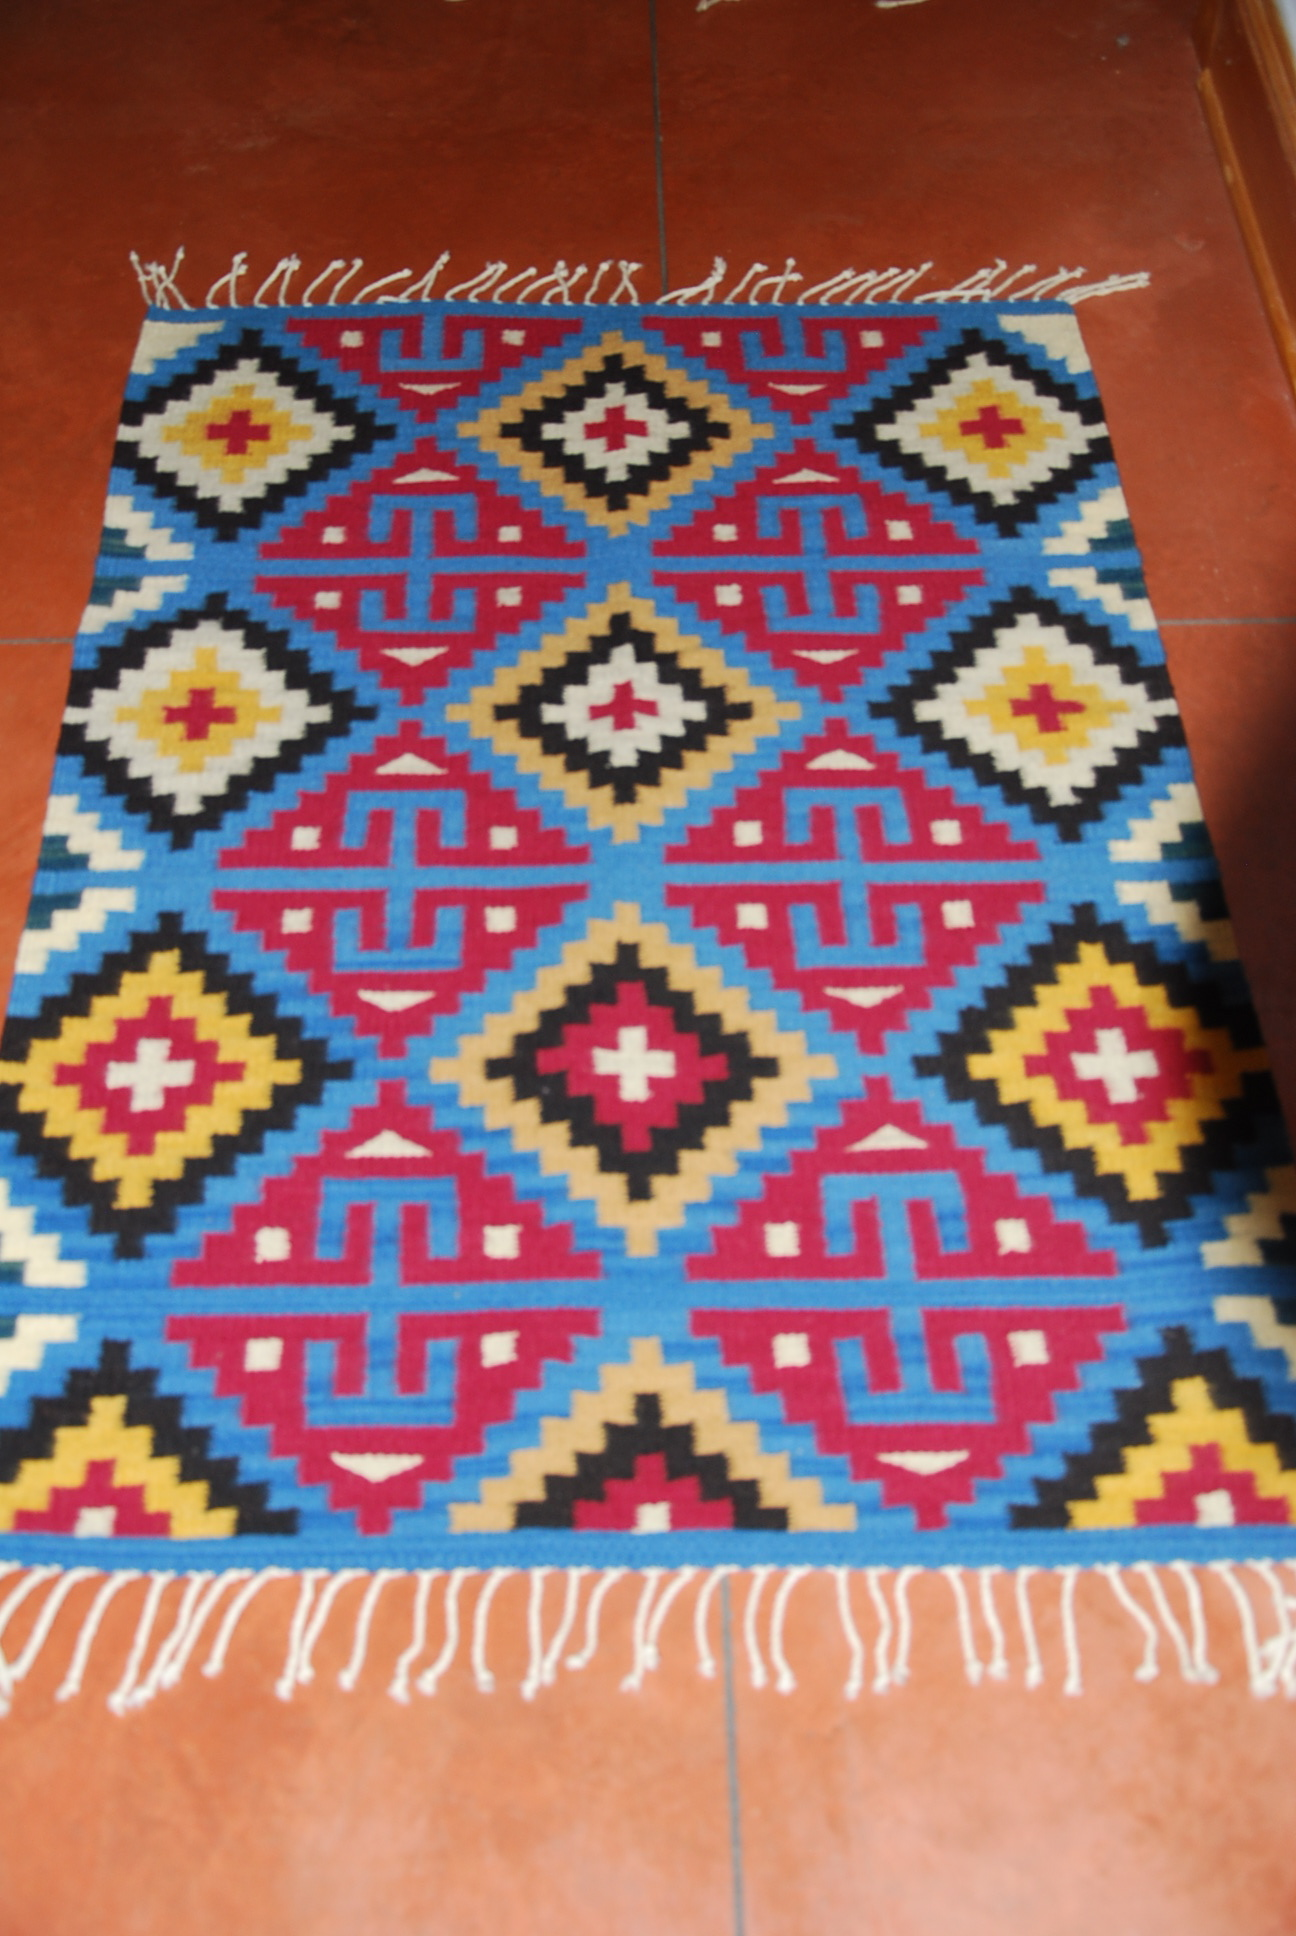 Oaxaca Mexico Rugs For Sale Handwoven with Natural Dyes